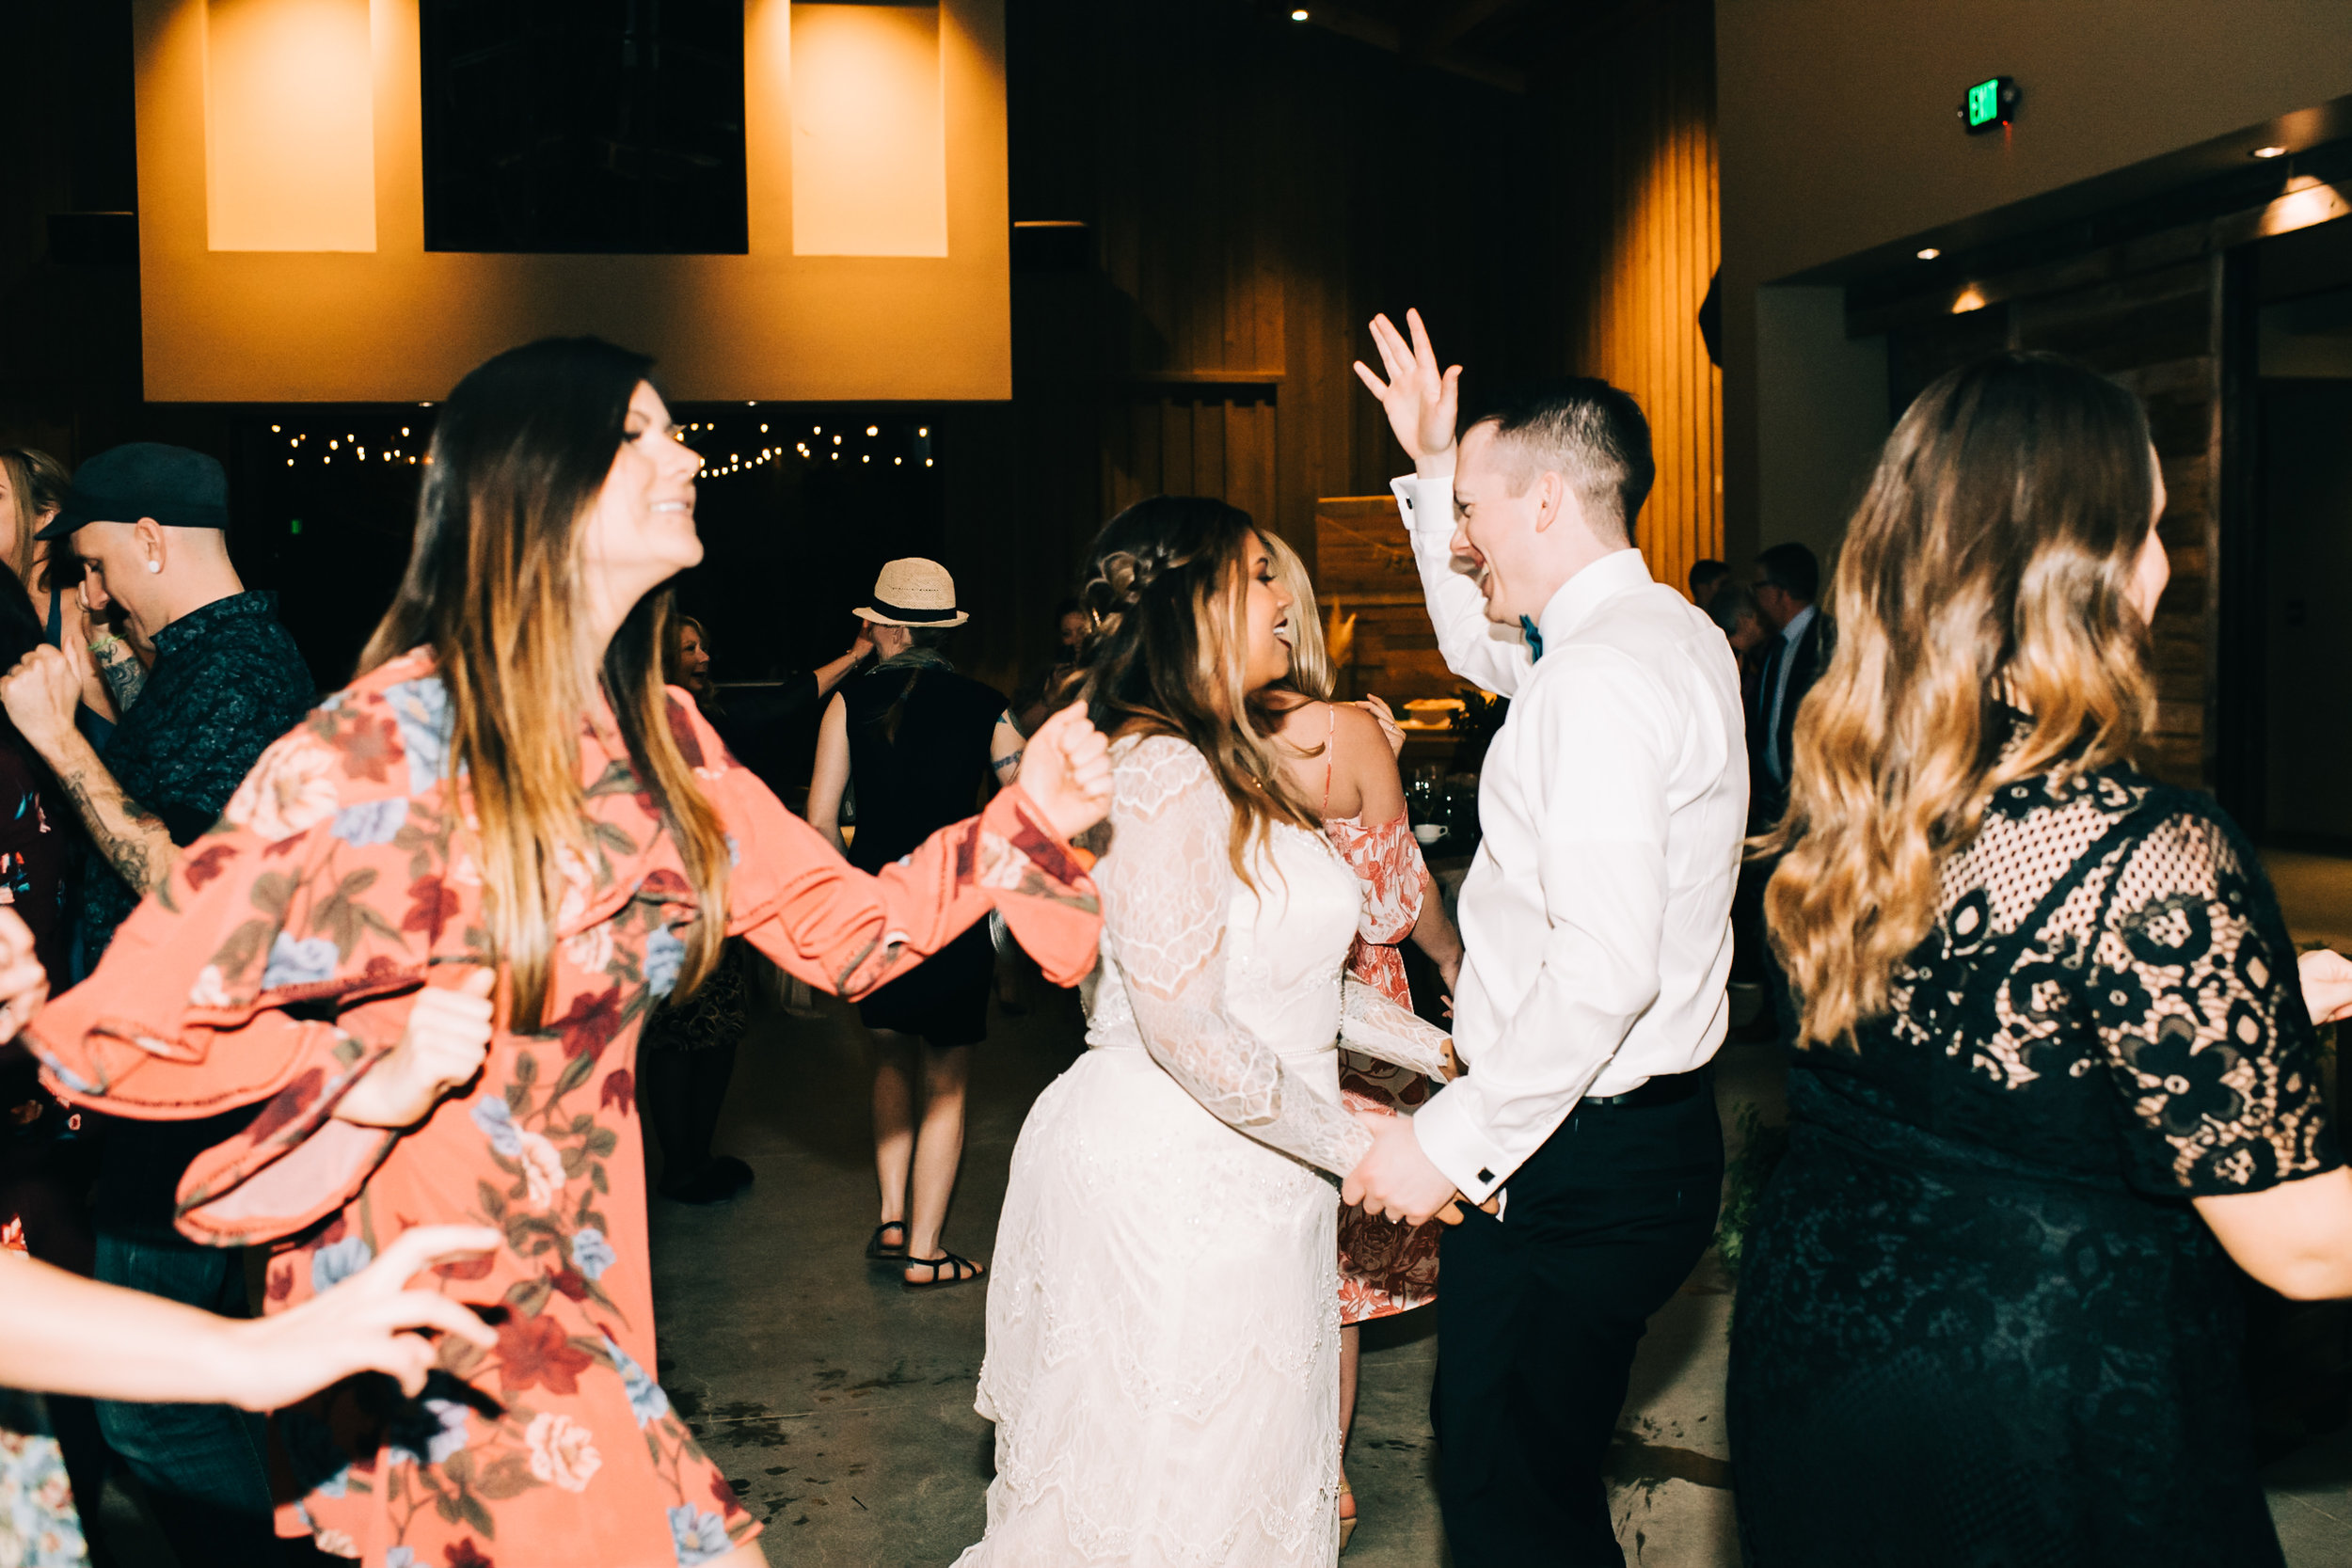 bay area nontraditional wedding photographer southern california boho wedding love light magic san francisco oakland northern california-1302.jpg